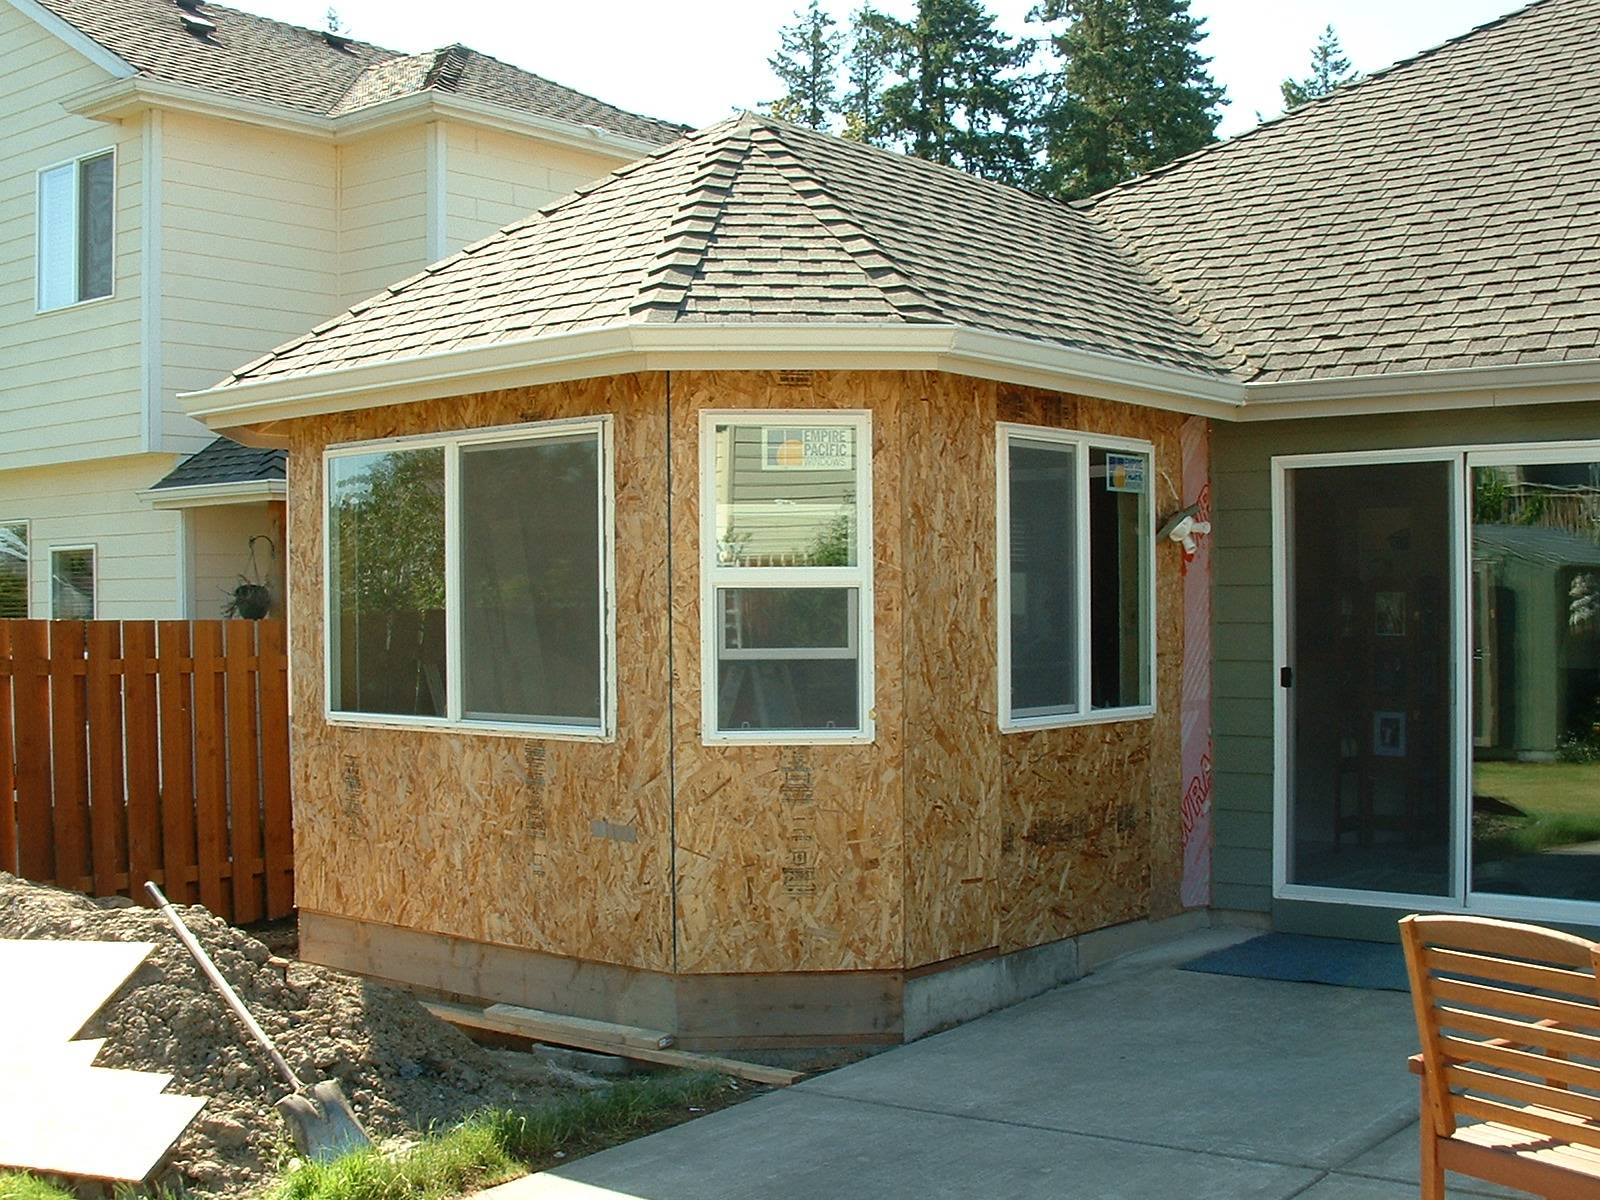 Home Addition Project Plans